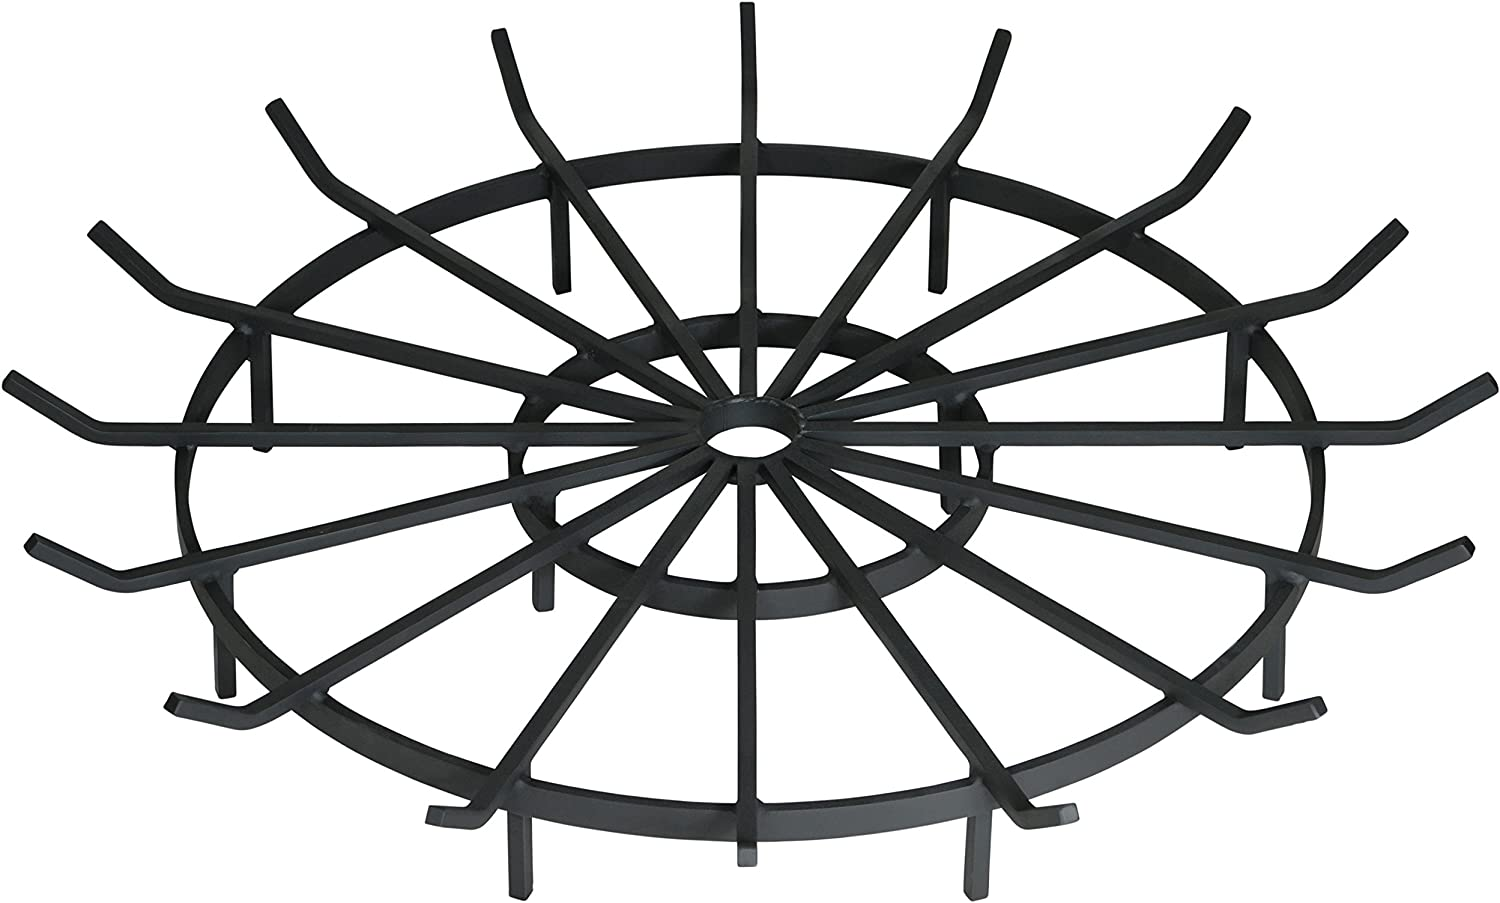 SteelFreak Wagon Wheel Firewood Grate for Fire Pit – Made in The USA 36 Inch